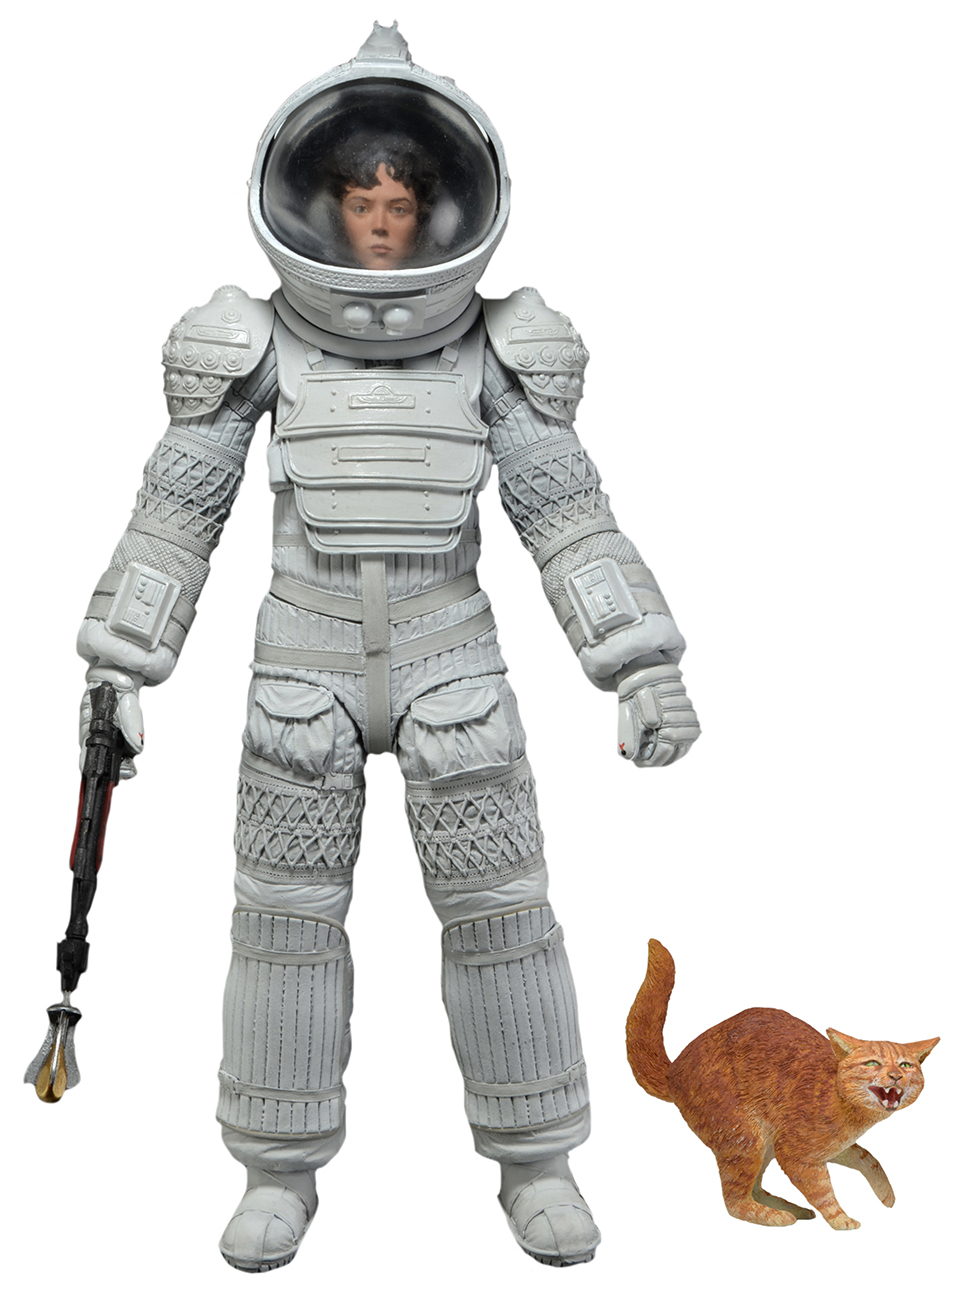 [NECA] Series 4 - Aliens: Ellen Ripley e Dallas Arthur NECA-Aliens-Series-4-Ellen-Ripley-in-Spacesuit